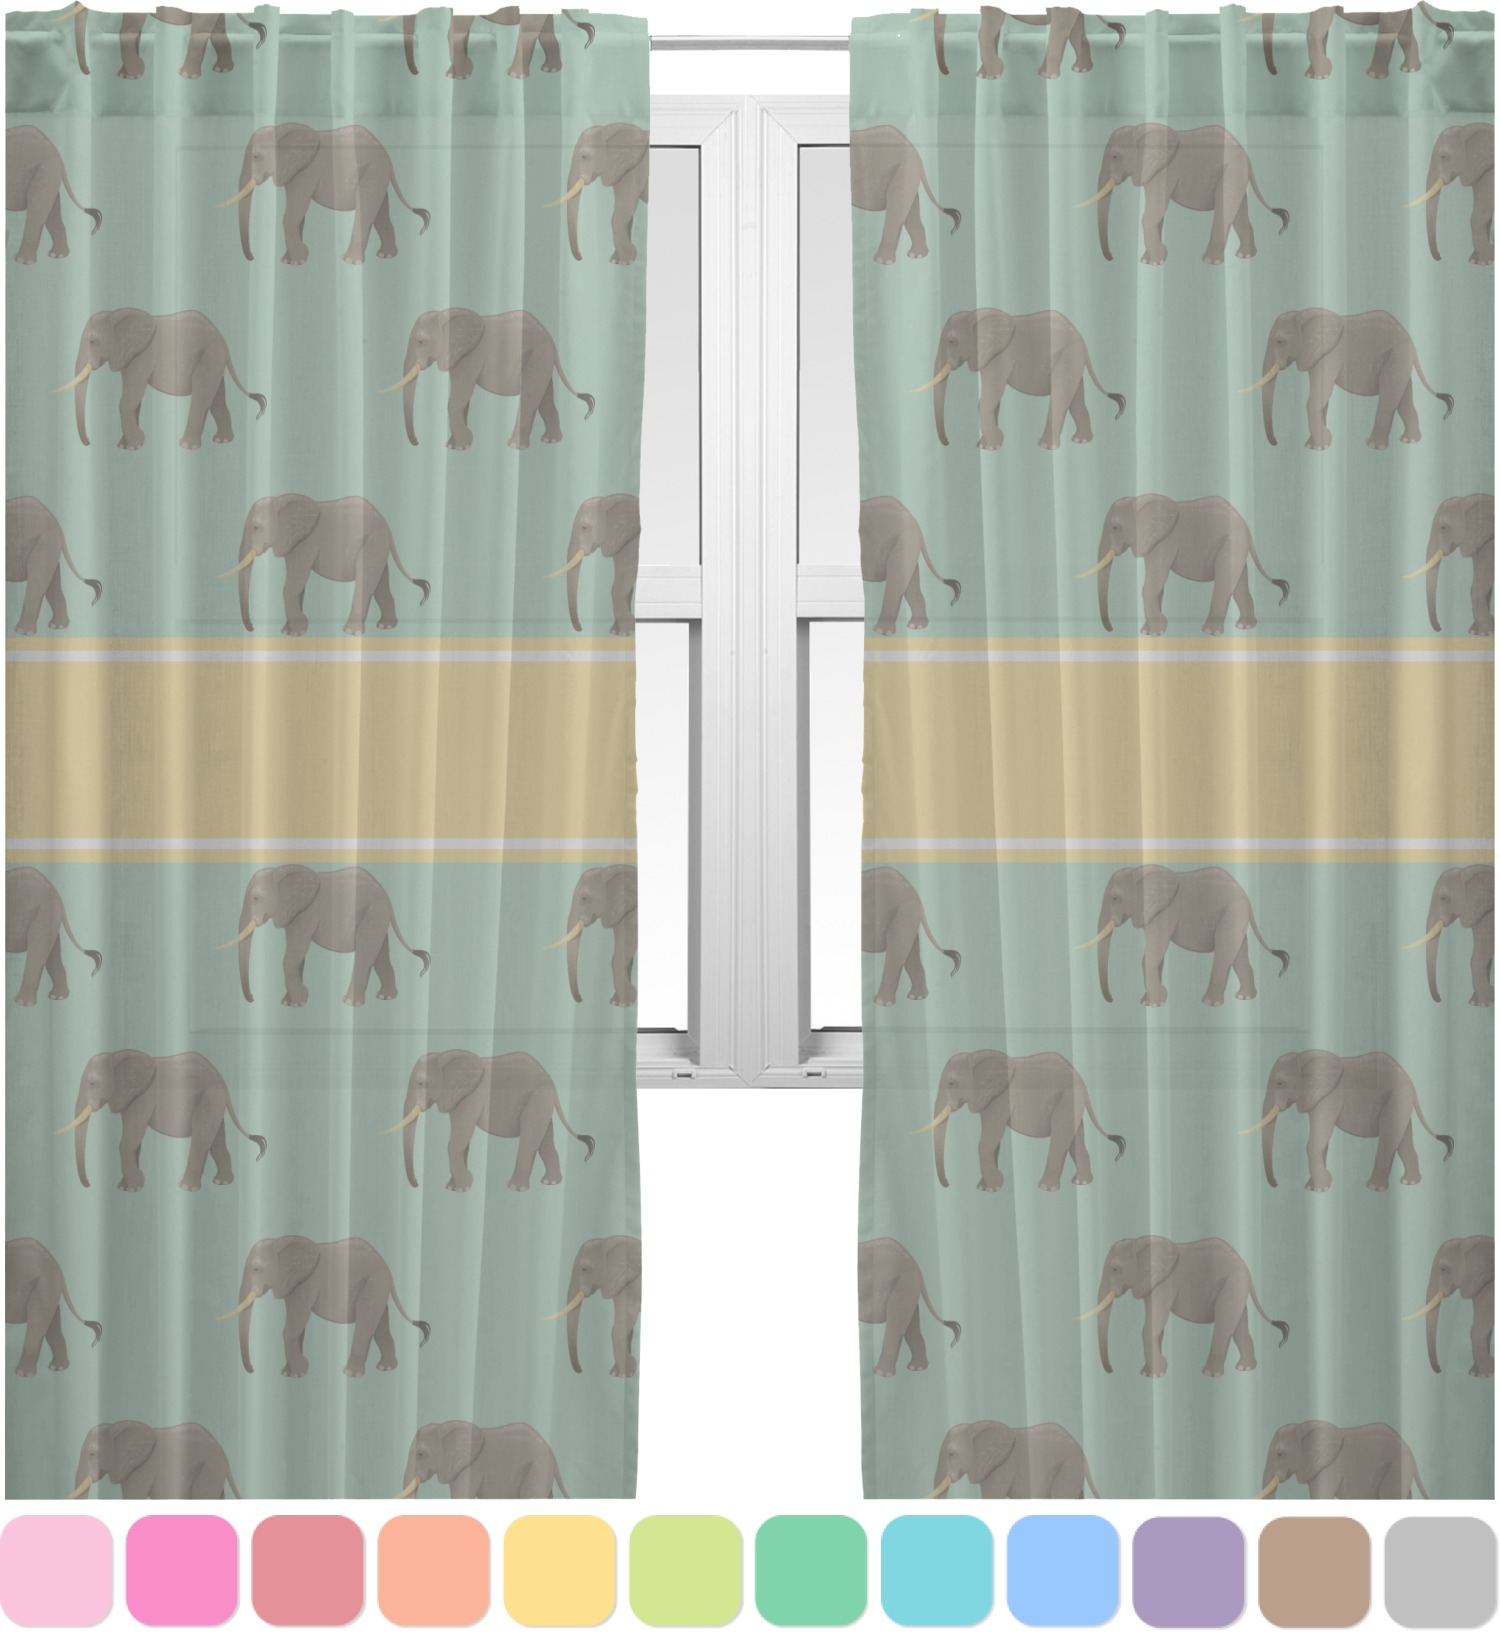 Elephant Sheer Curtains Personalized